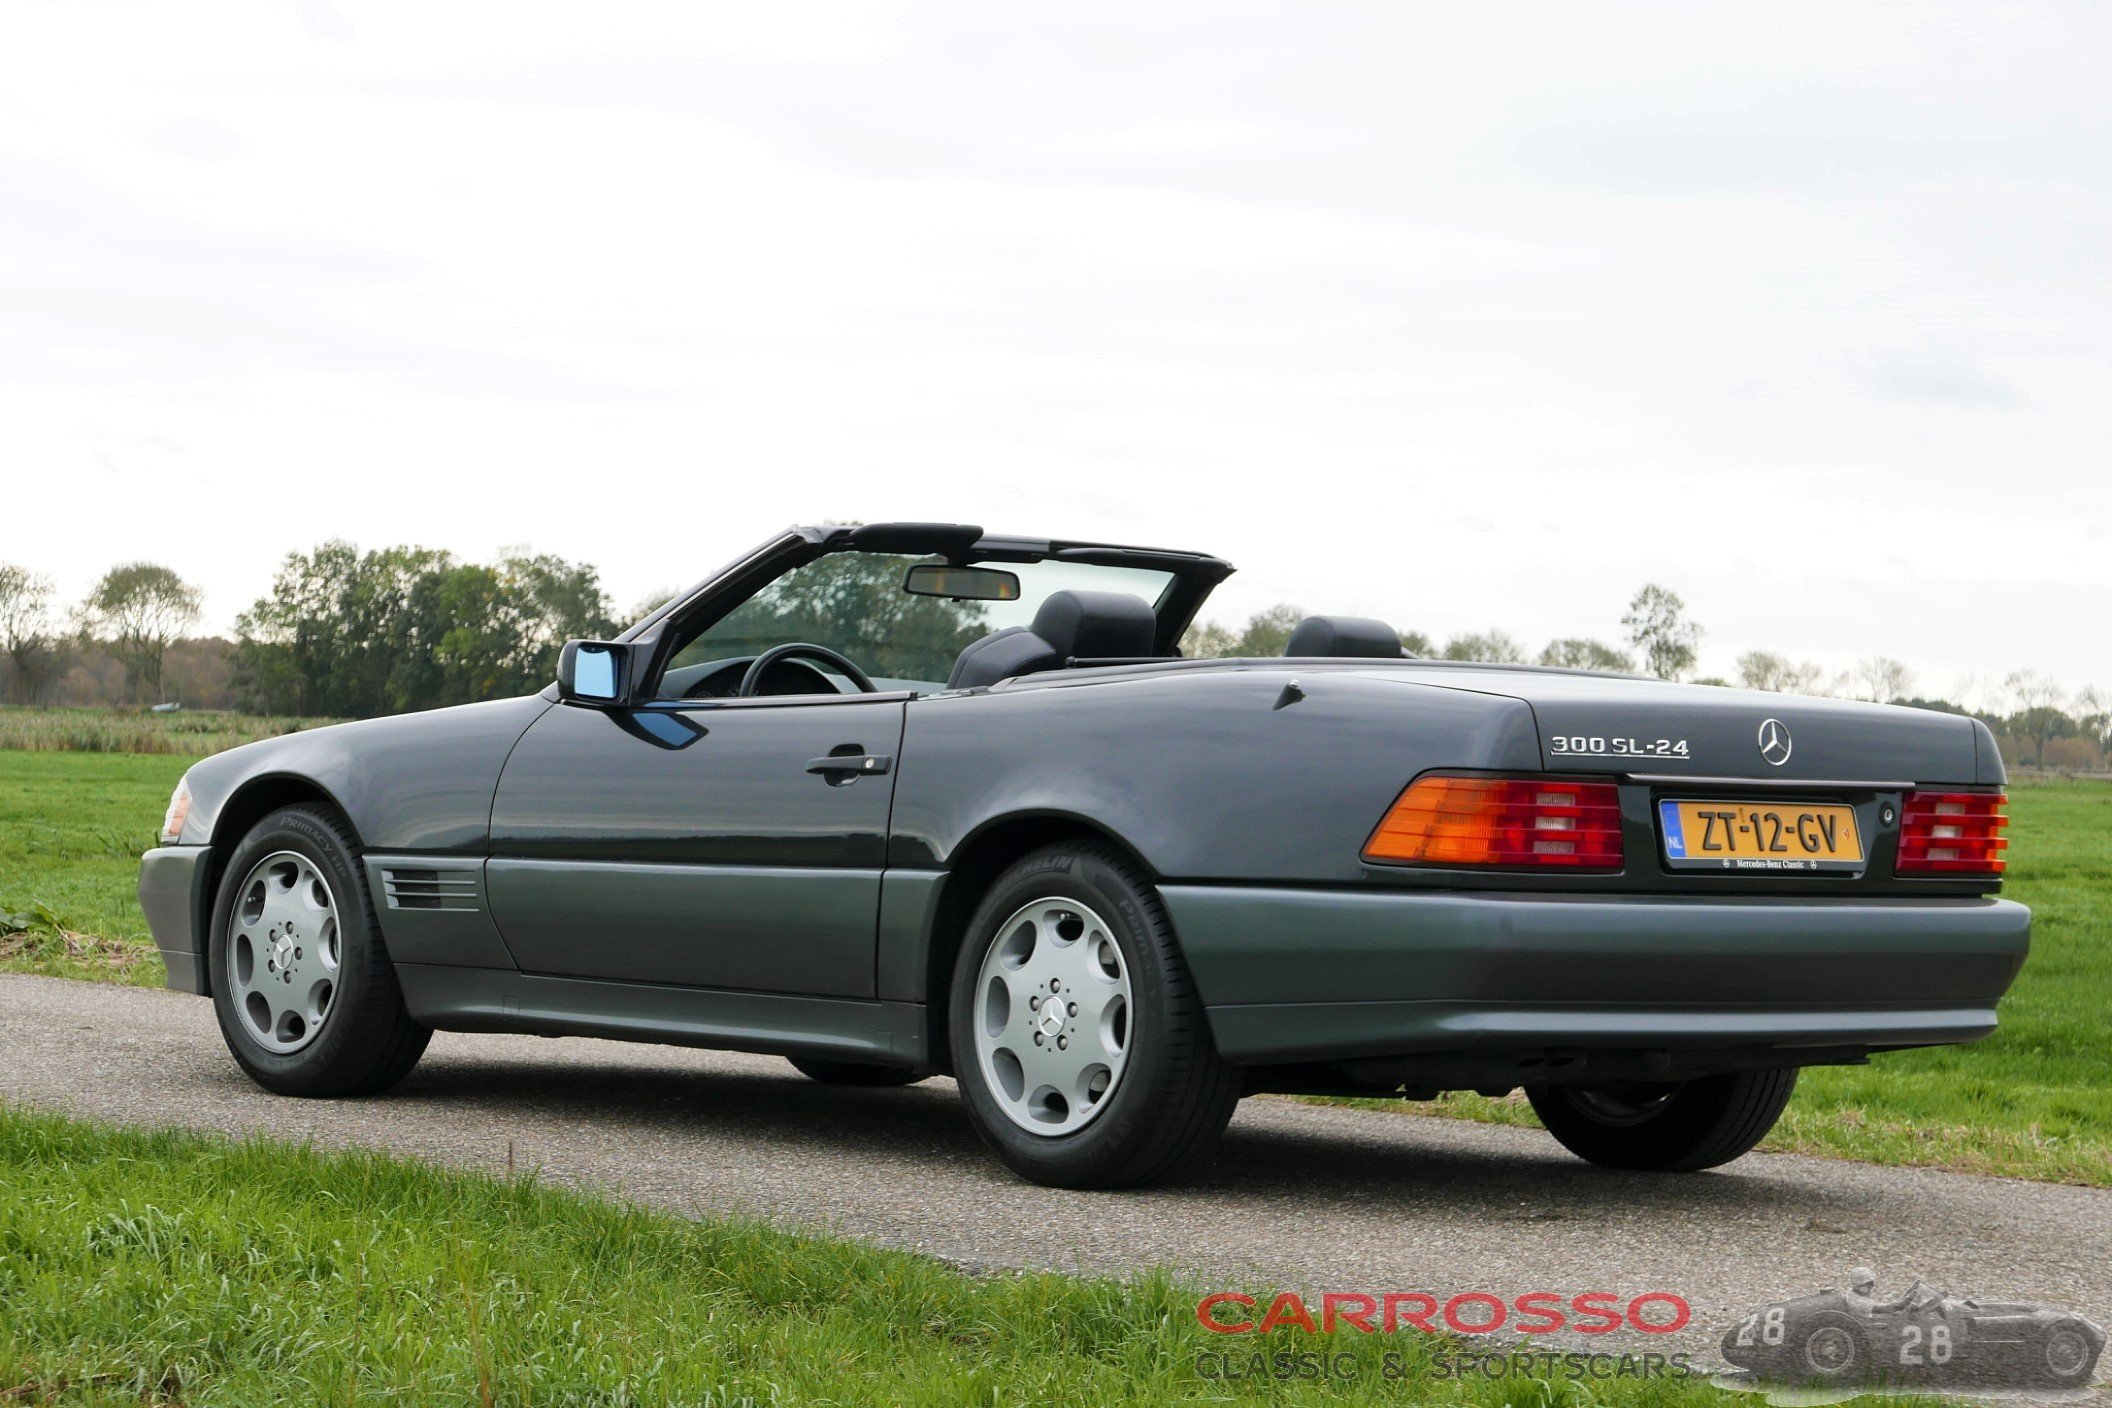 12Mercedes Benz SL 300 (43)